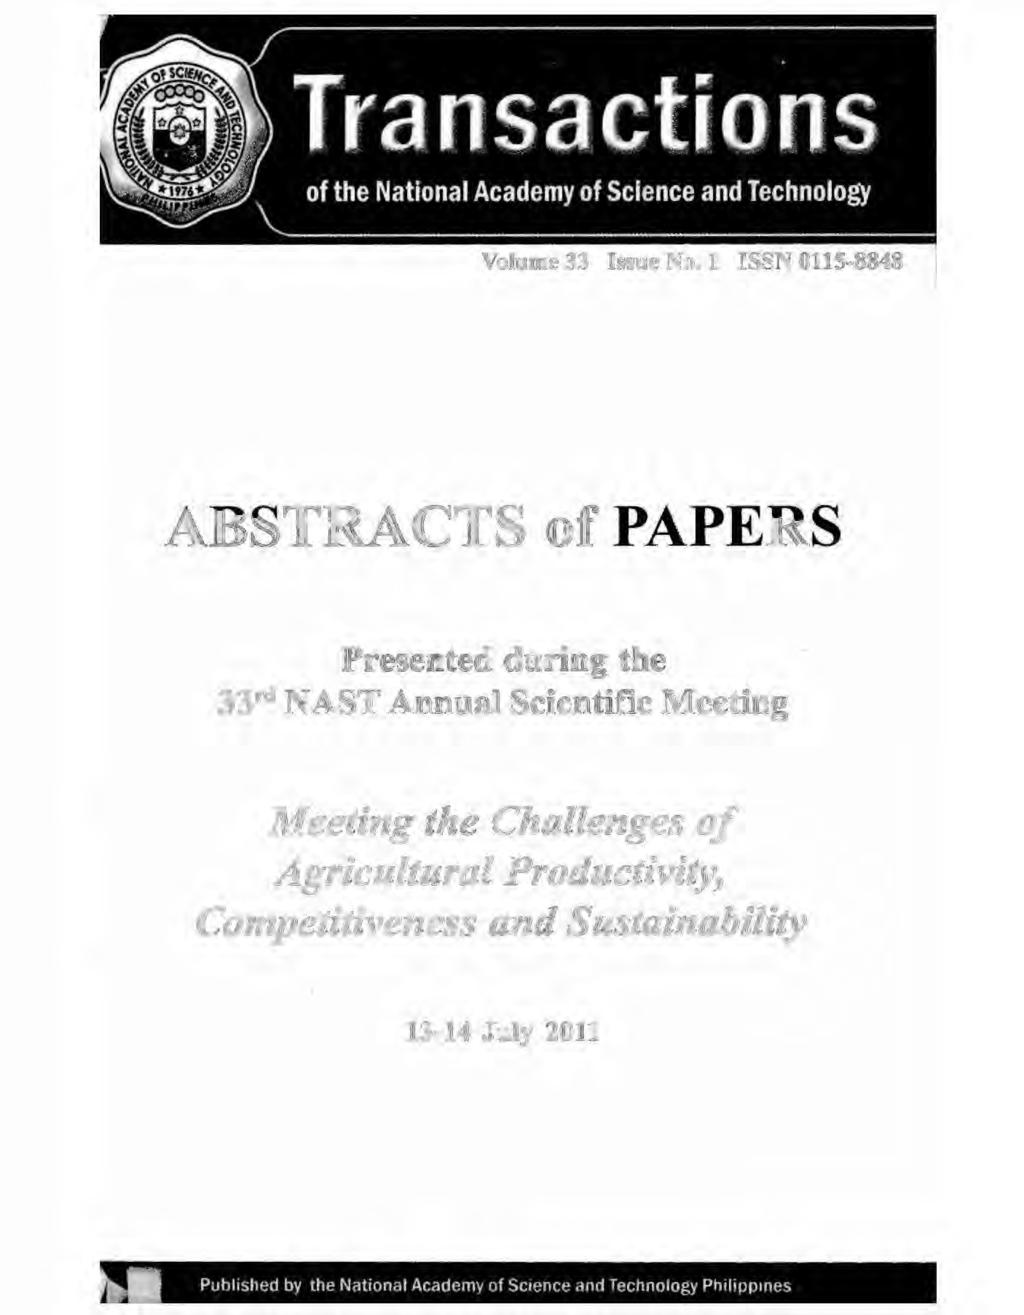 ABSTRACTS of PAPERS Presented during the 33rd NAST Annual